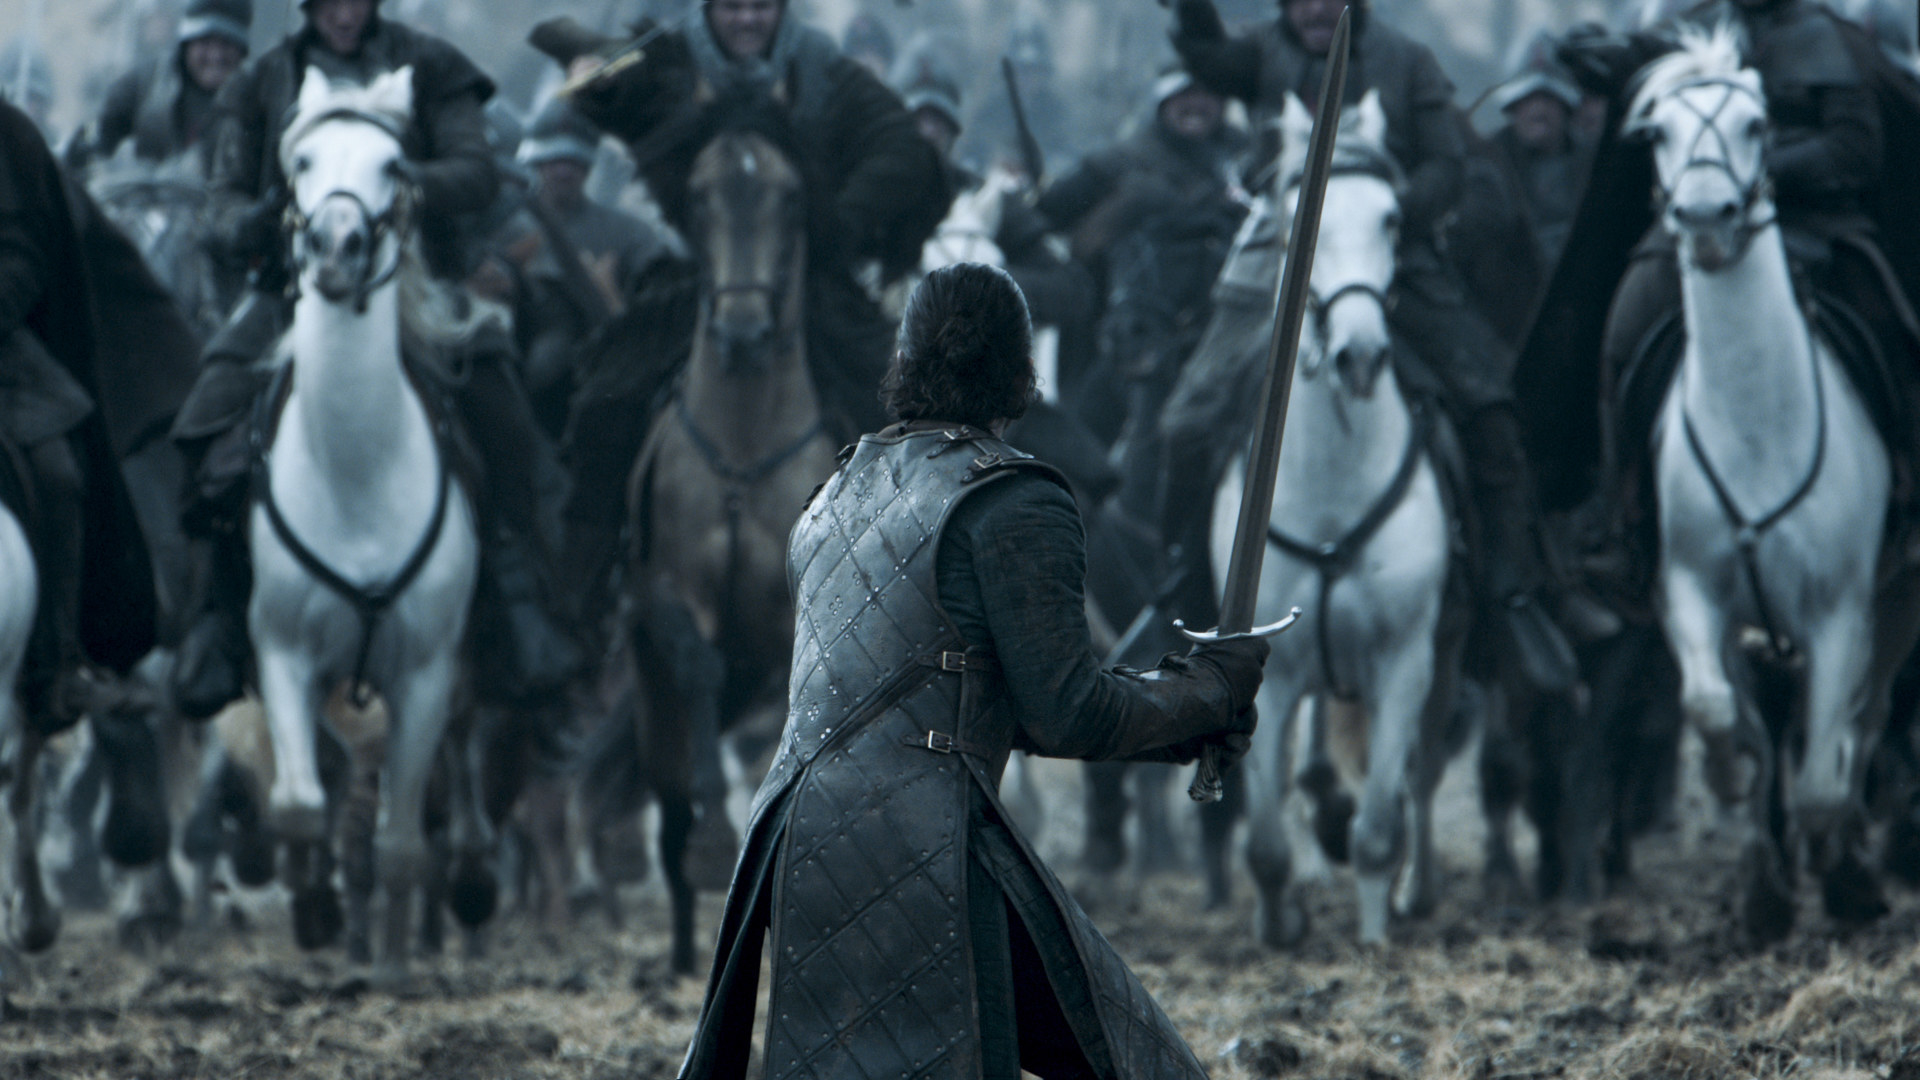 Still from Game of Thrones: Jon Snow stands with his back to the camera, holding a sword, as soldiers on horses charge towards him